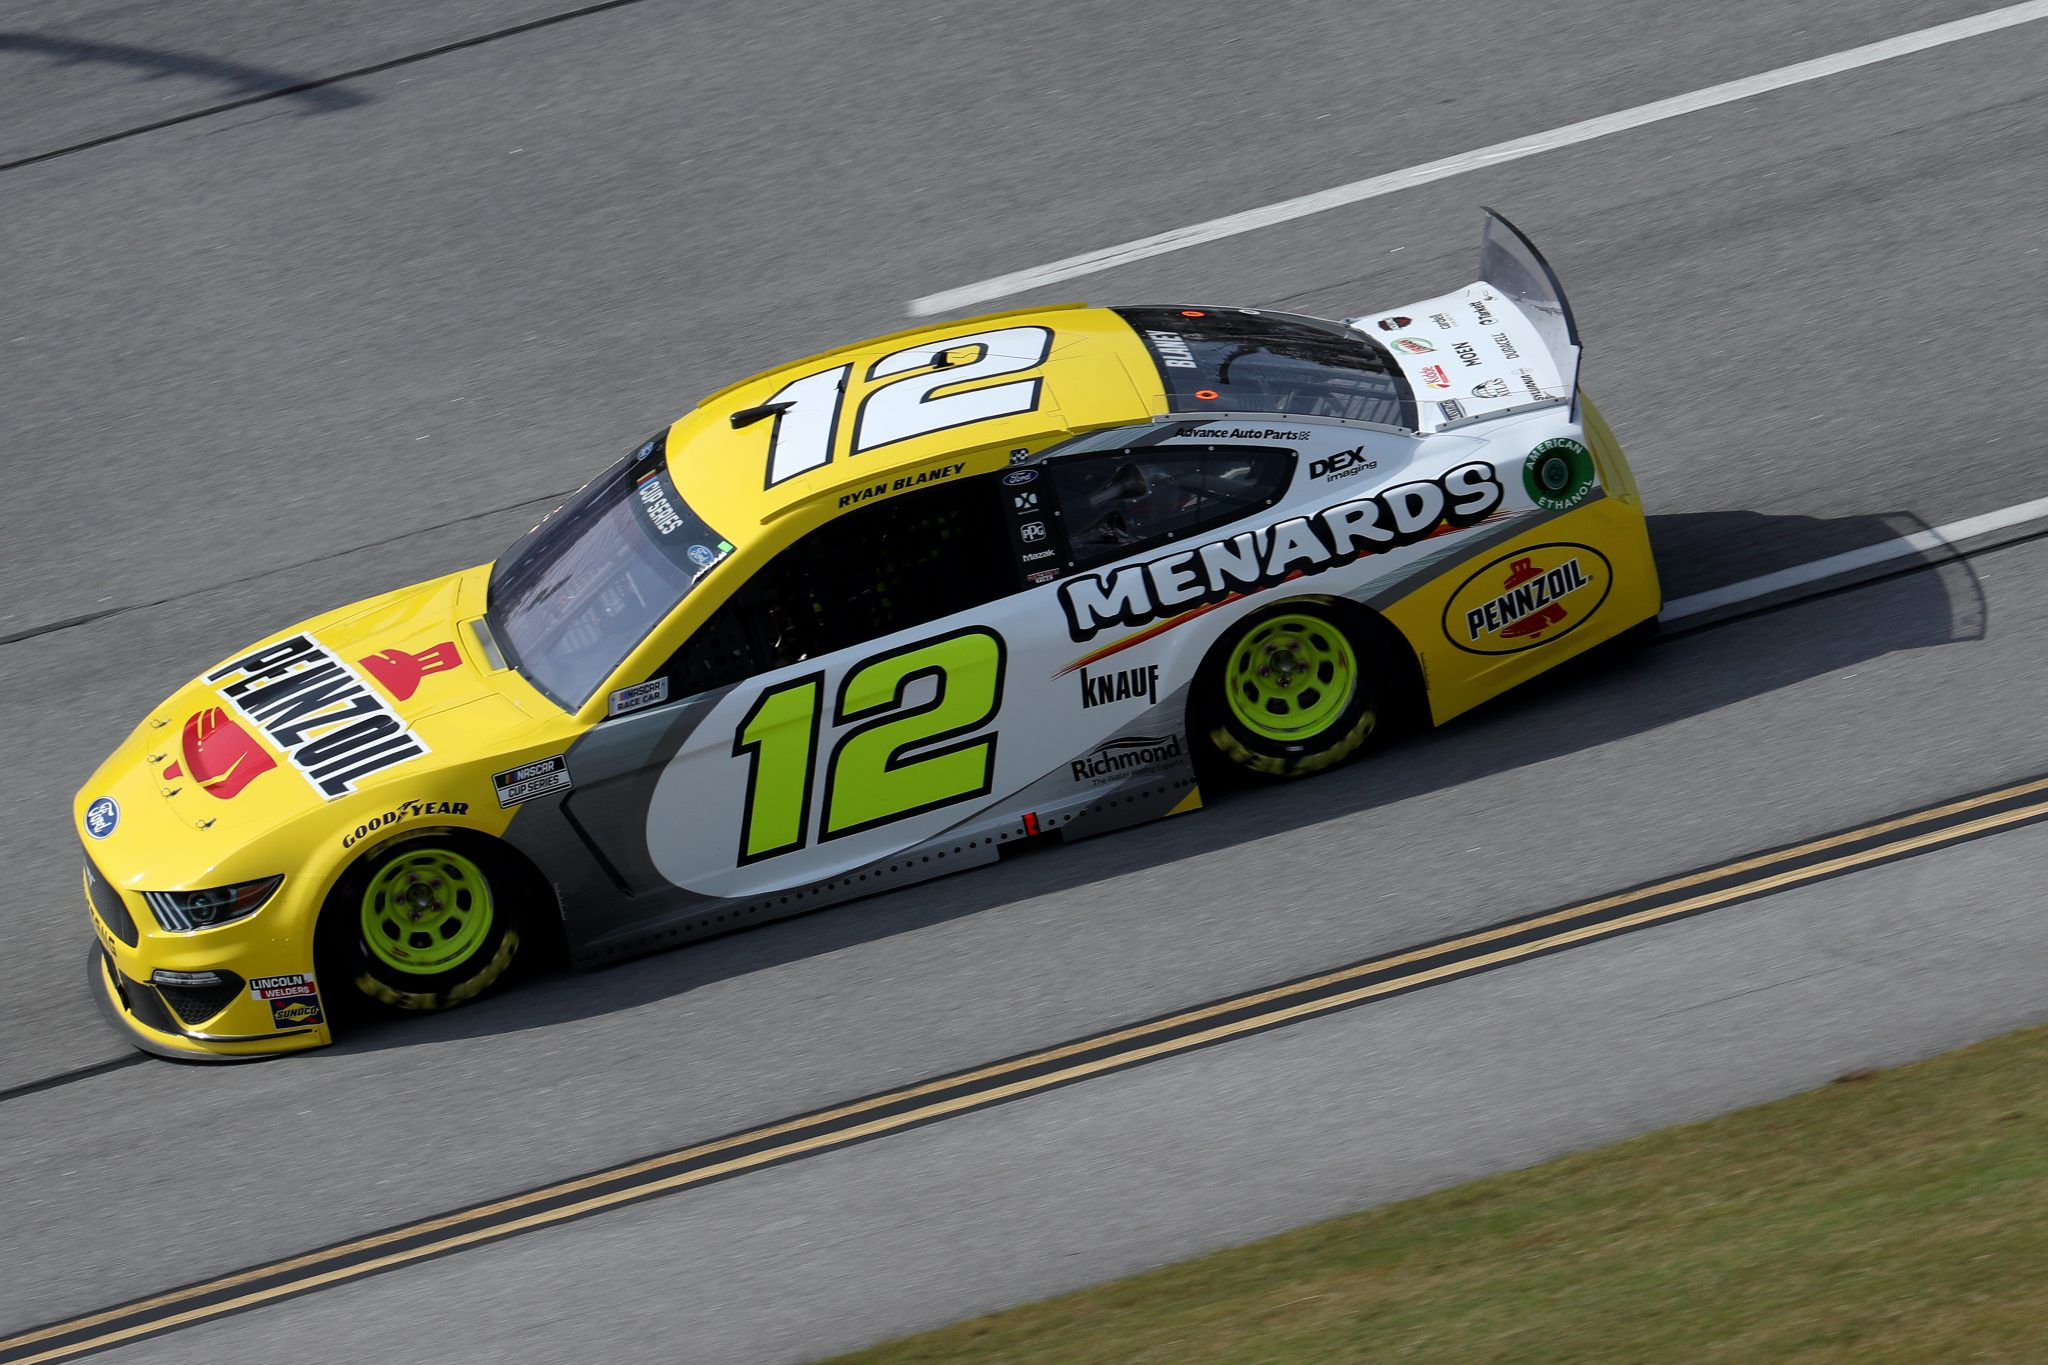 TALLADEGA, ALABAMA - OCTOBER 04: Ryan Blaney, driver of the #12 Menards/Pennzoil Ford, drives during the NASCAR Cup Series YellaWood 500 at Talladega Superspeedway on October 04, 2020 in Talladega, Alabama. (Photo by Chris Graythen/Getty Images) | Getty Images